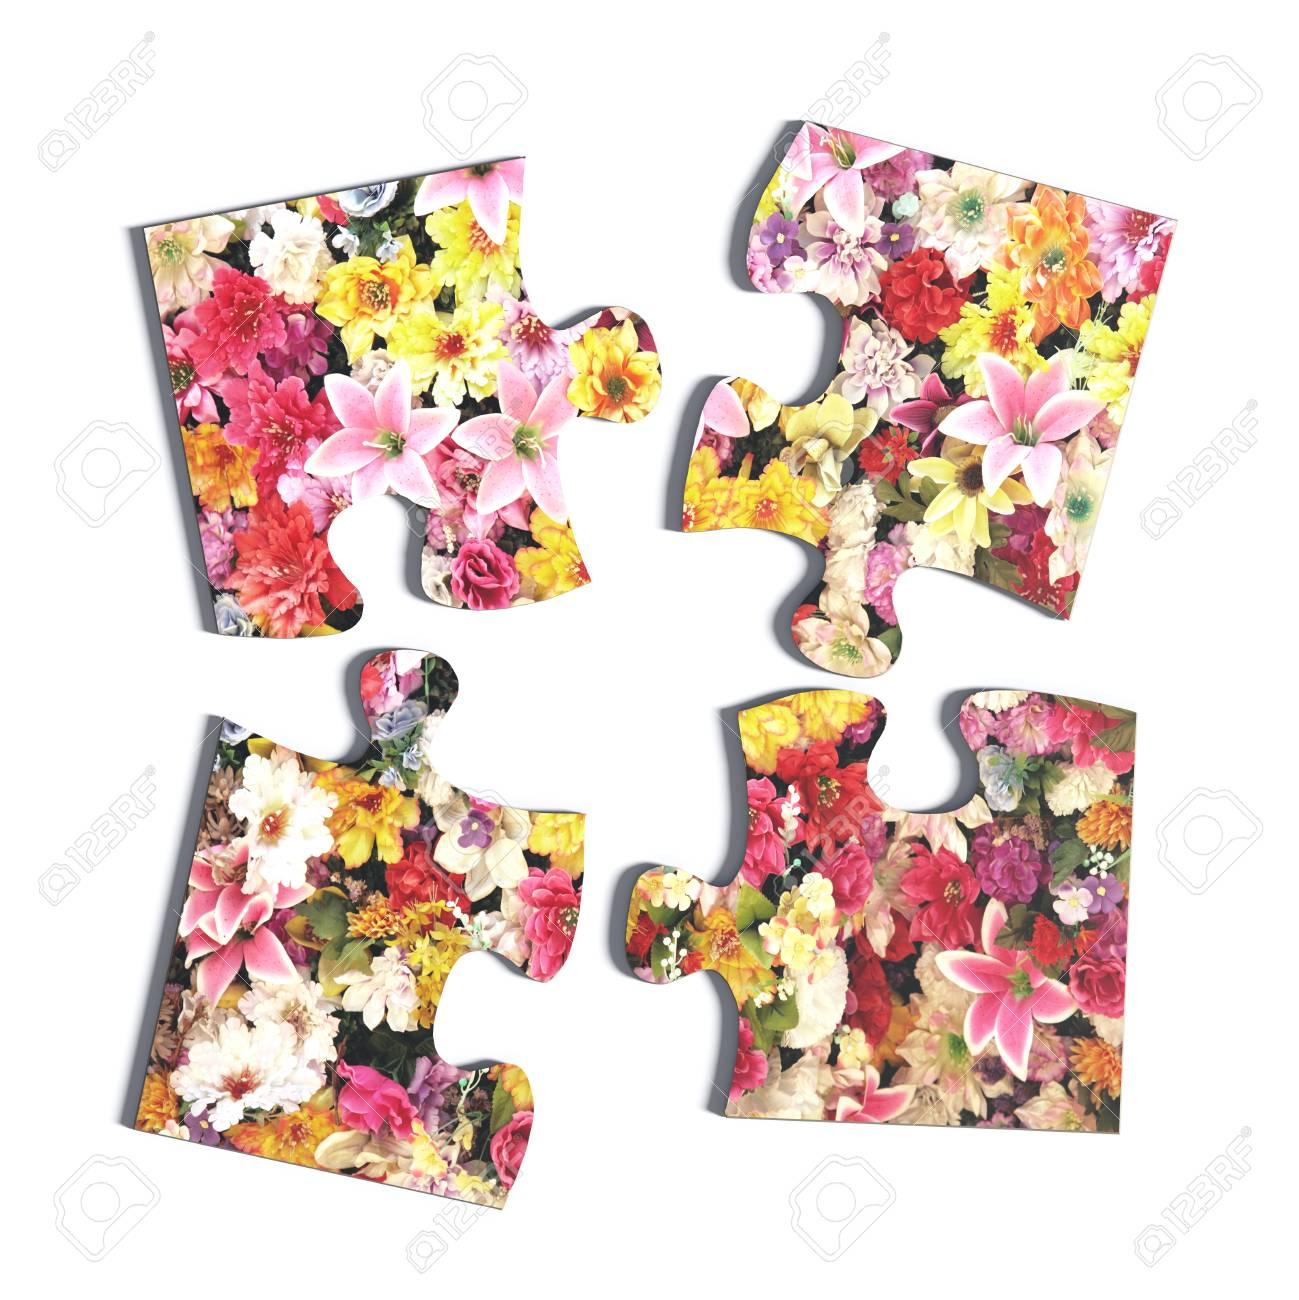 3D Rendering Of Four Puzzle Pieces With Flower Print On White - Print On Puzzle